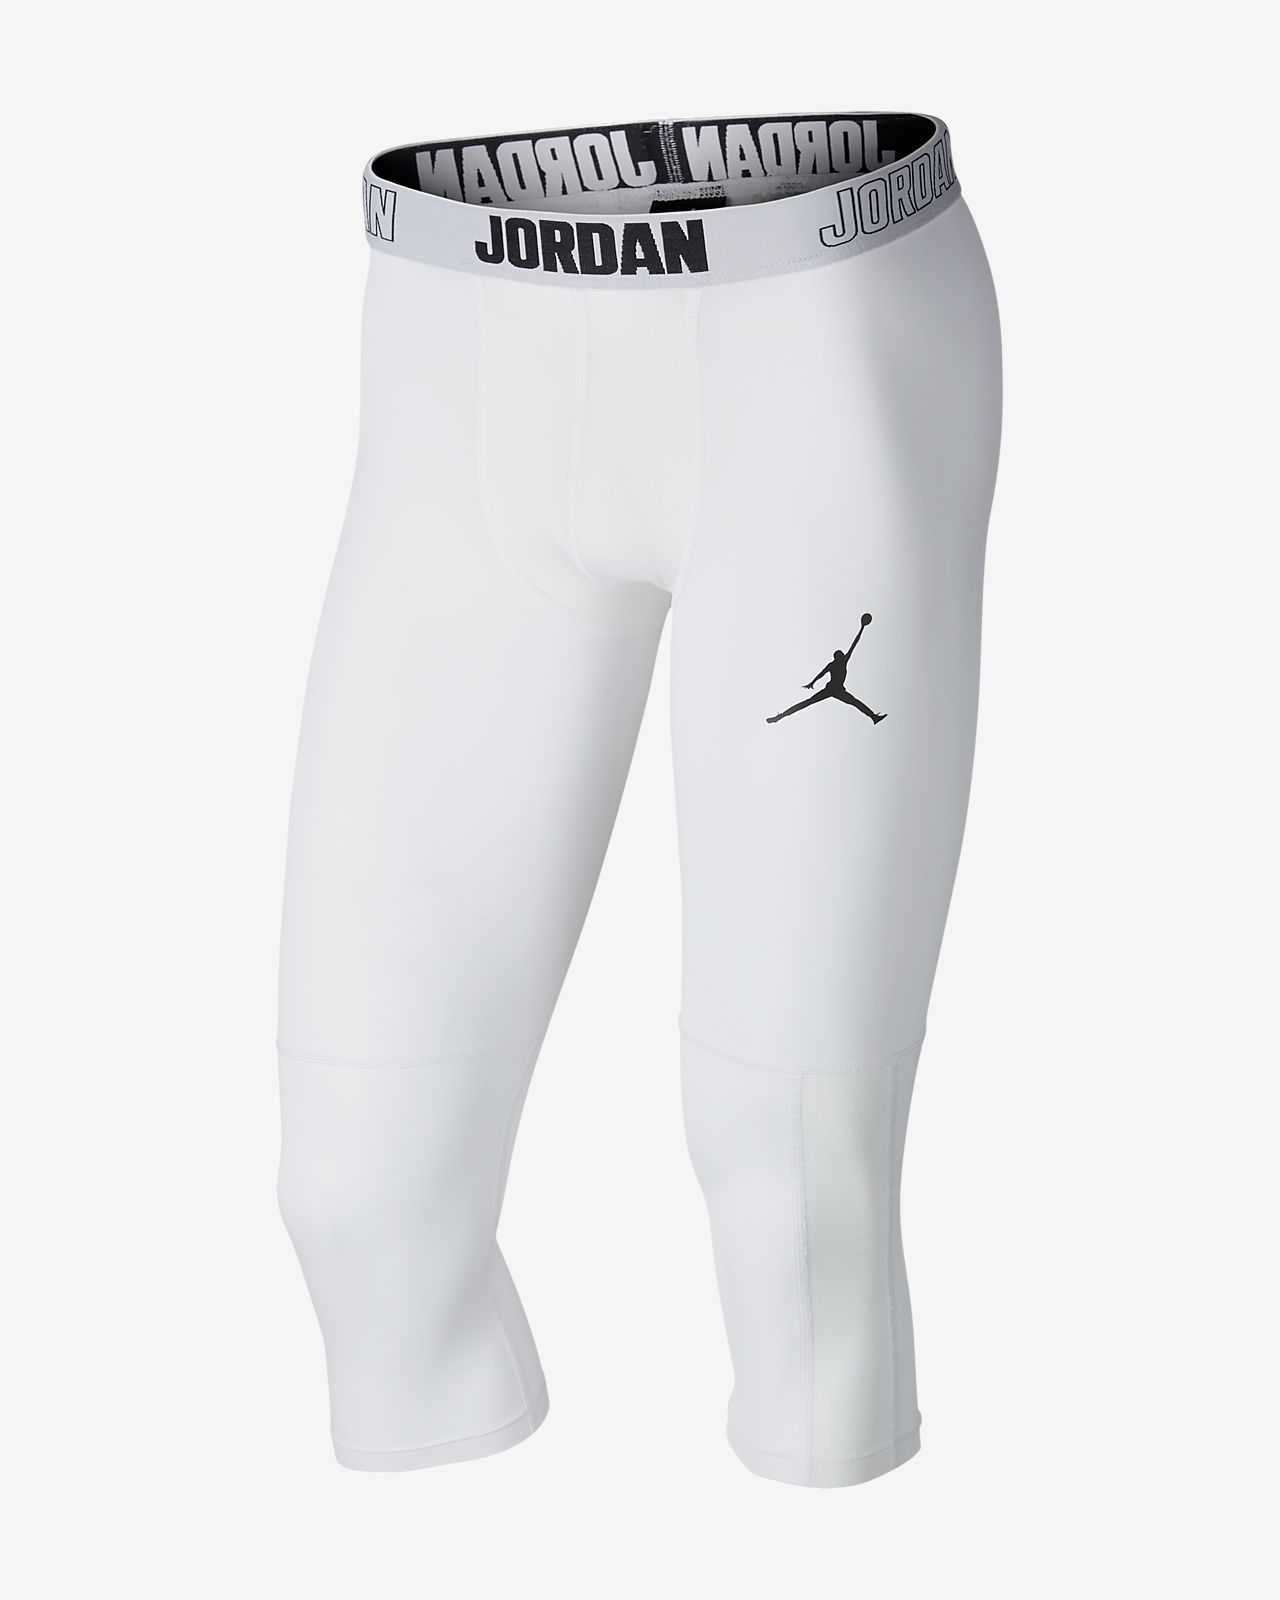 Jordan Dri-FIT 23 Alpha Men's 3/4 Training Tights